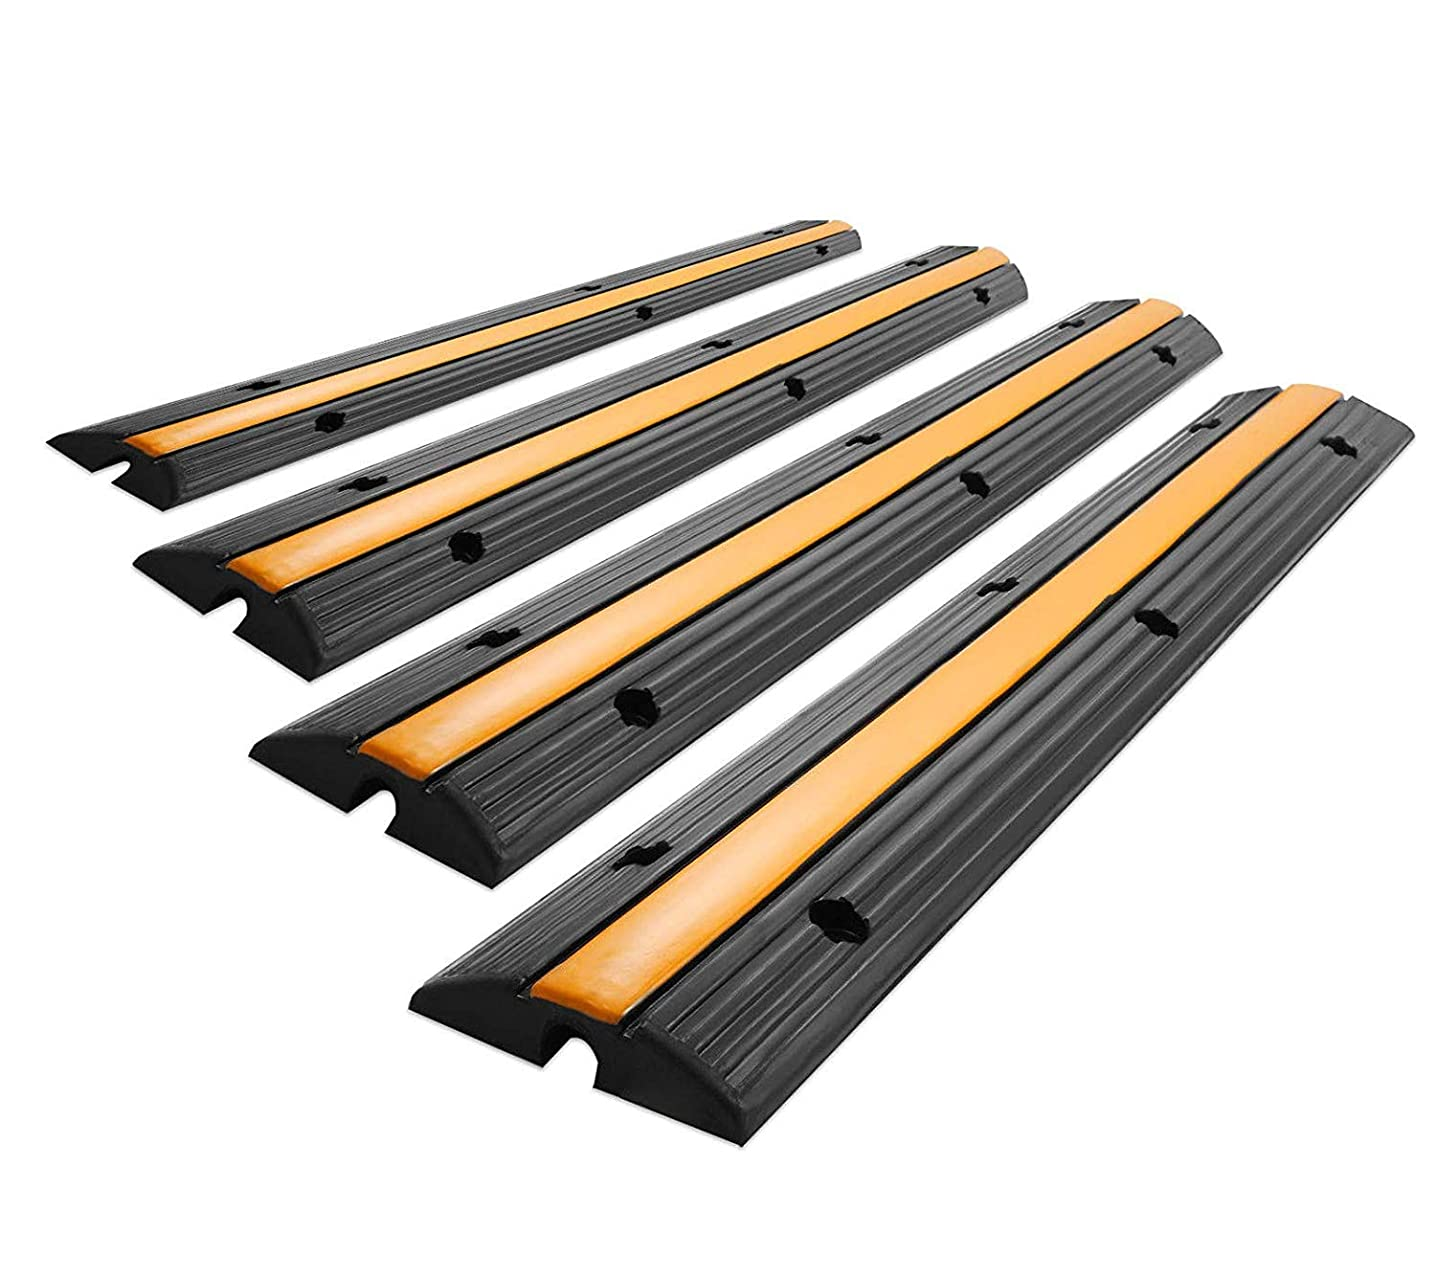 4 Pack of 1 Channel Rubber Cable Protector Ramp Traffic Wire Cover Capacity 18000 lbs Rubber Speed Bump